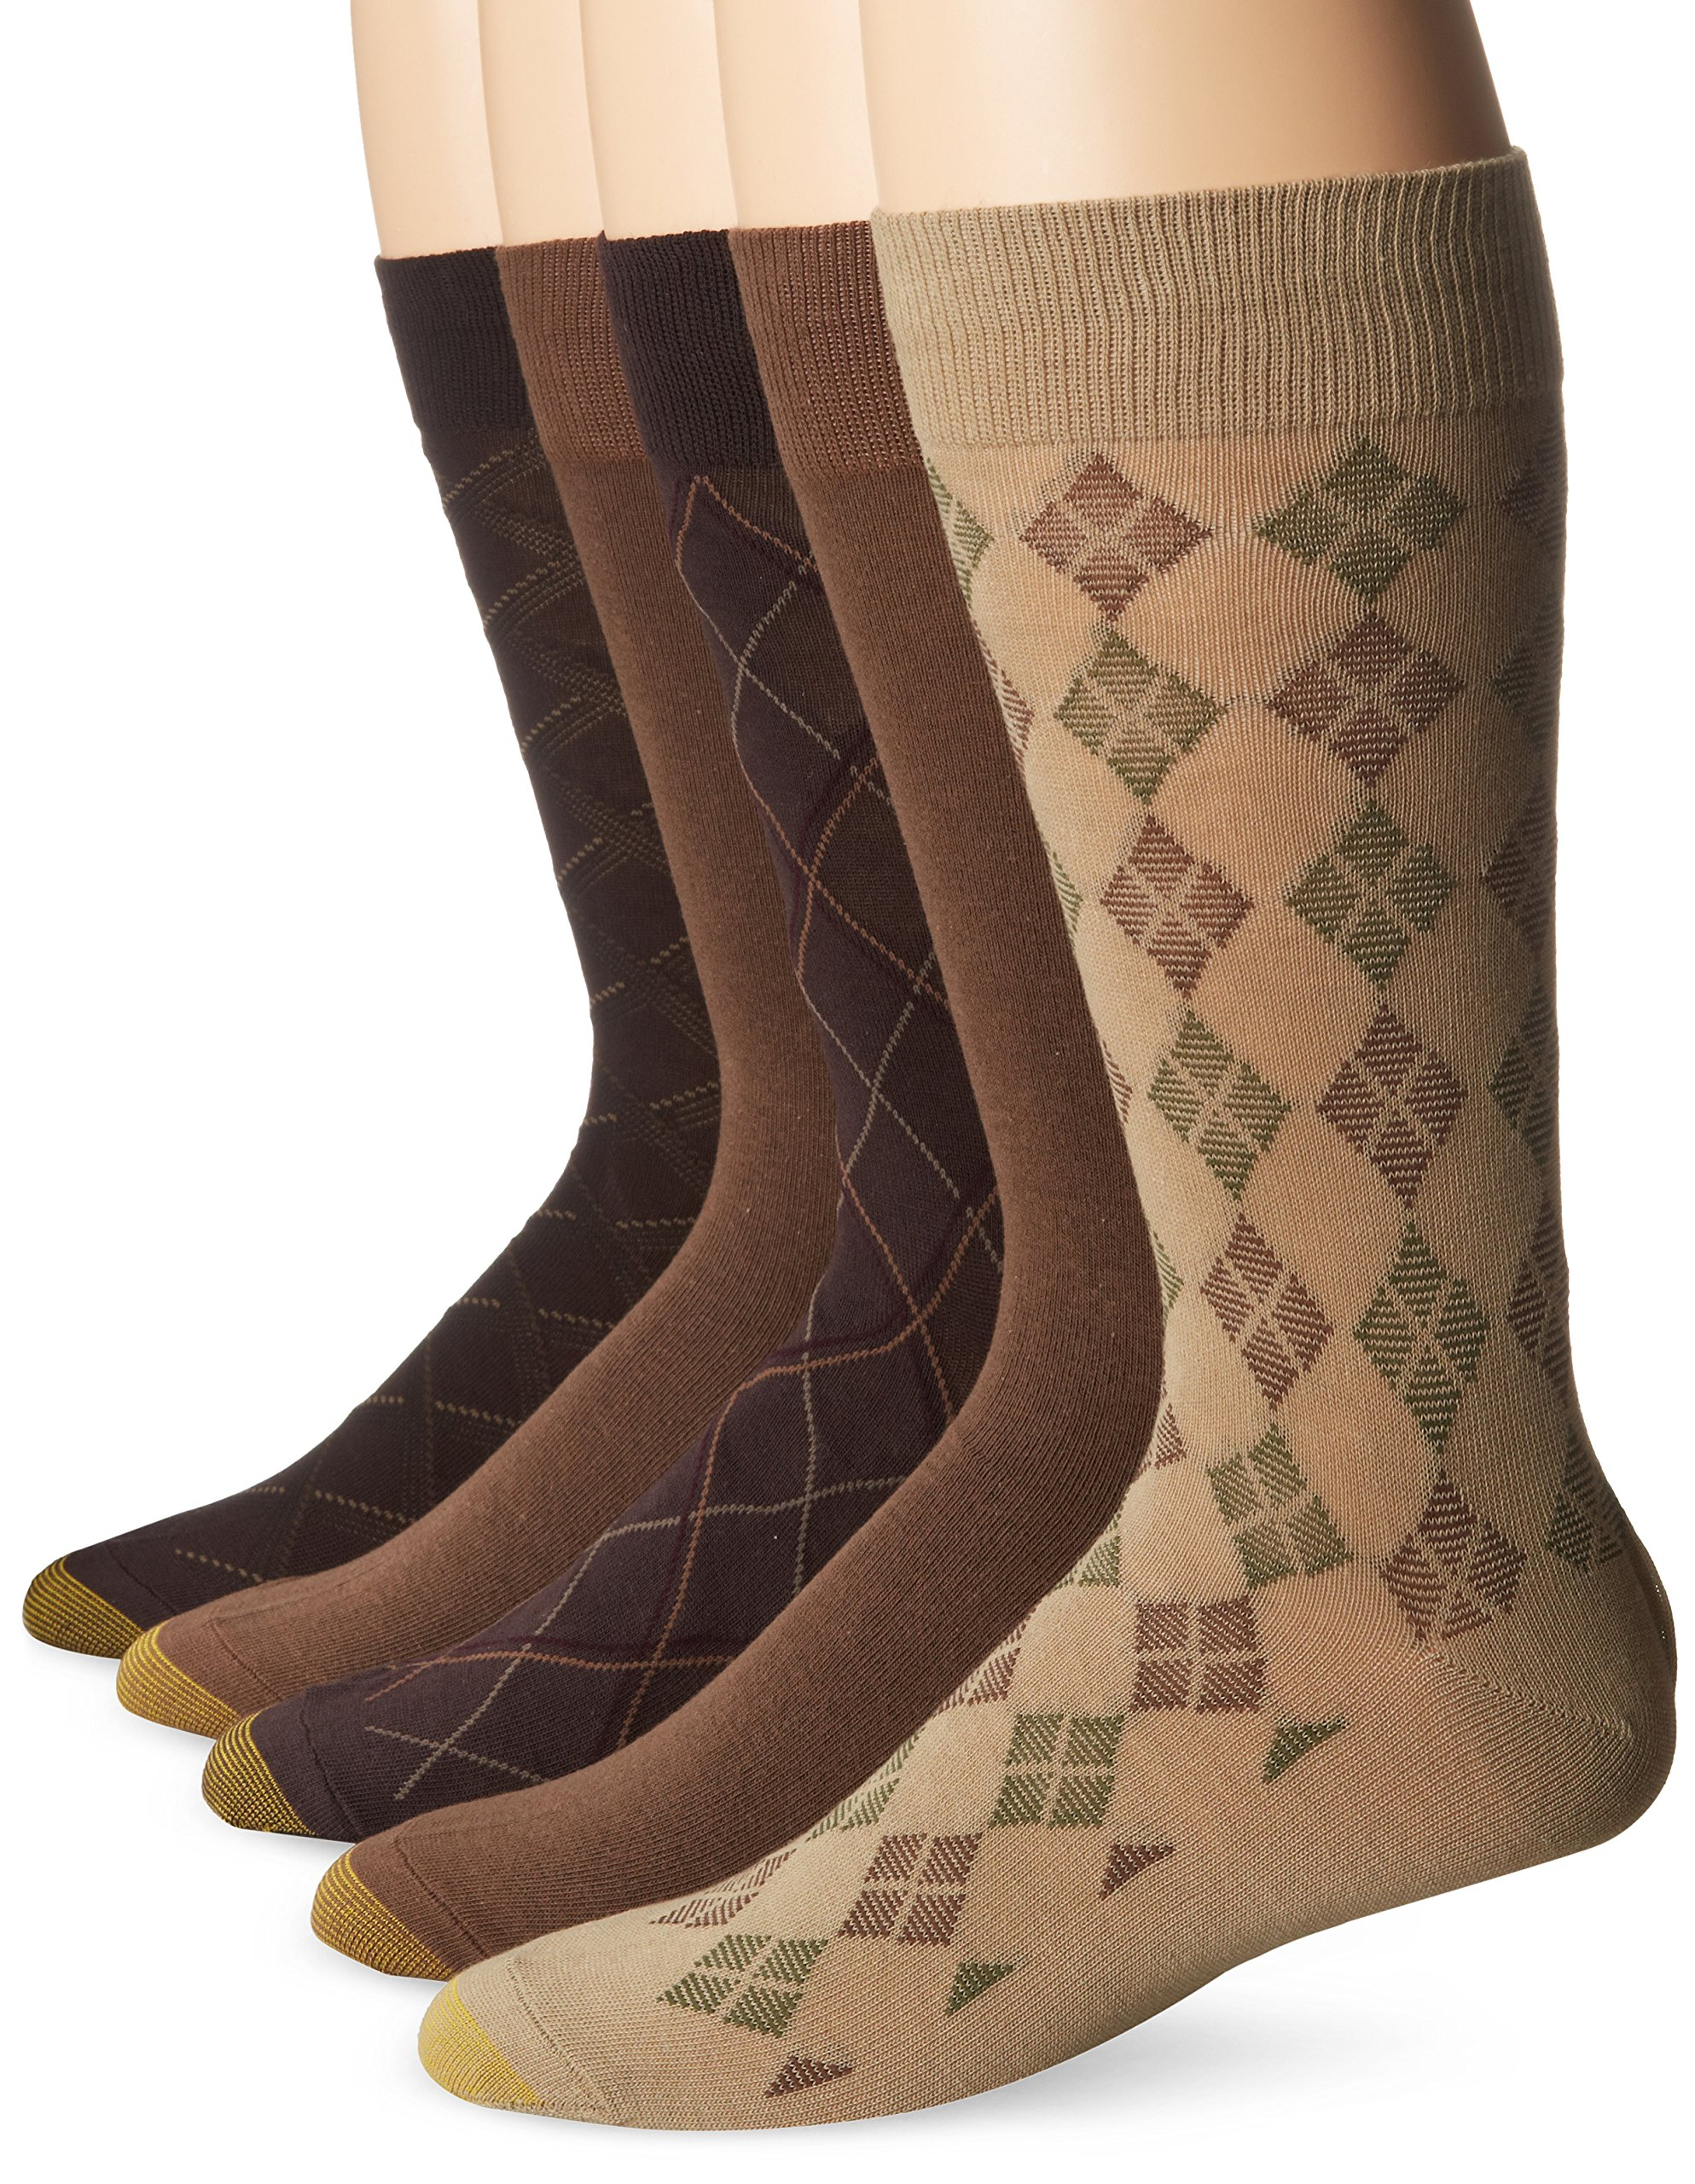 Gold Toe Men's 5 Pack Diagonal Plaid Fashion, Brown/Mocha/Cork, 10-13/6-12 by Gold Toe